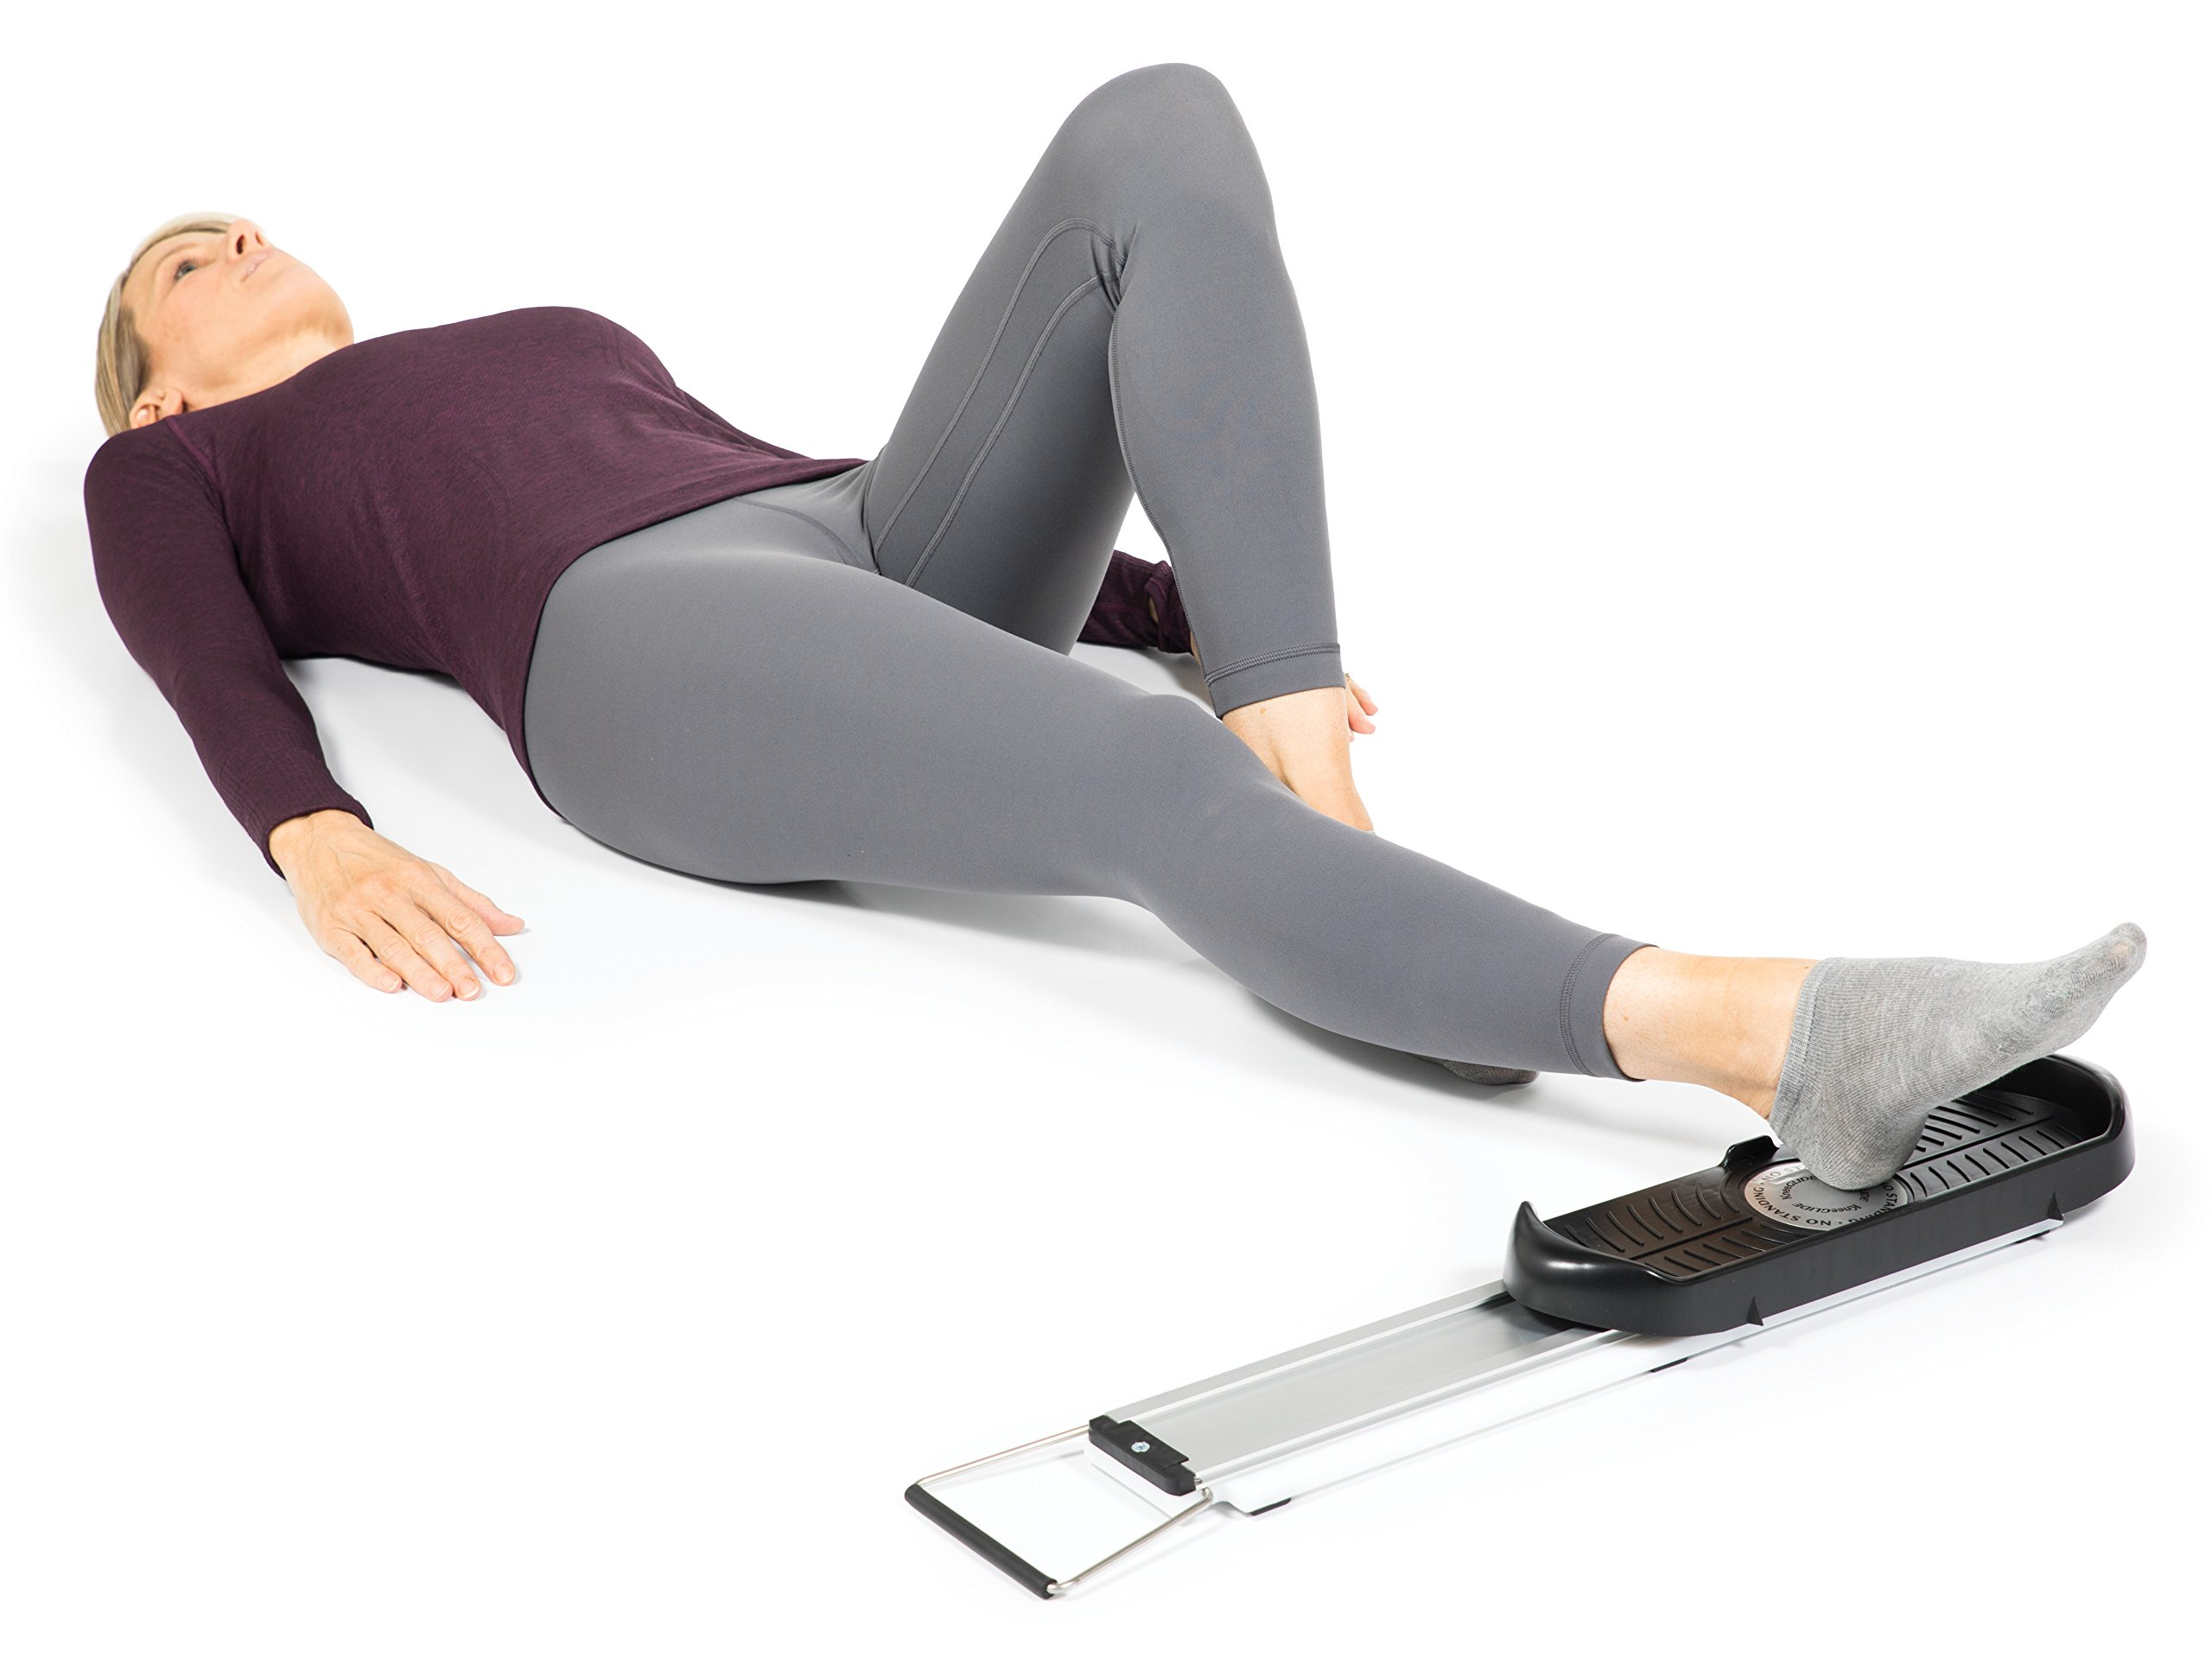 Knee Glide - An Exercise Tool for Therapy After Knee Replacement | Rehabilitation for ACL, PCL, Shoulder, Rotator Cuff Surgery, or Hip Replacement by OPTP (Image #8)